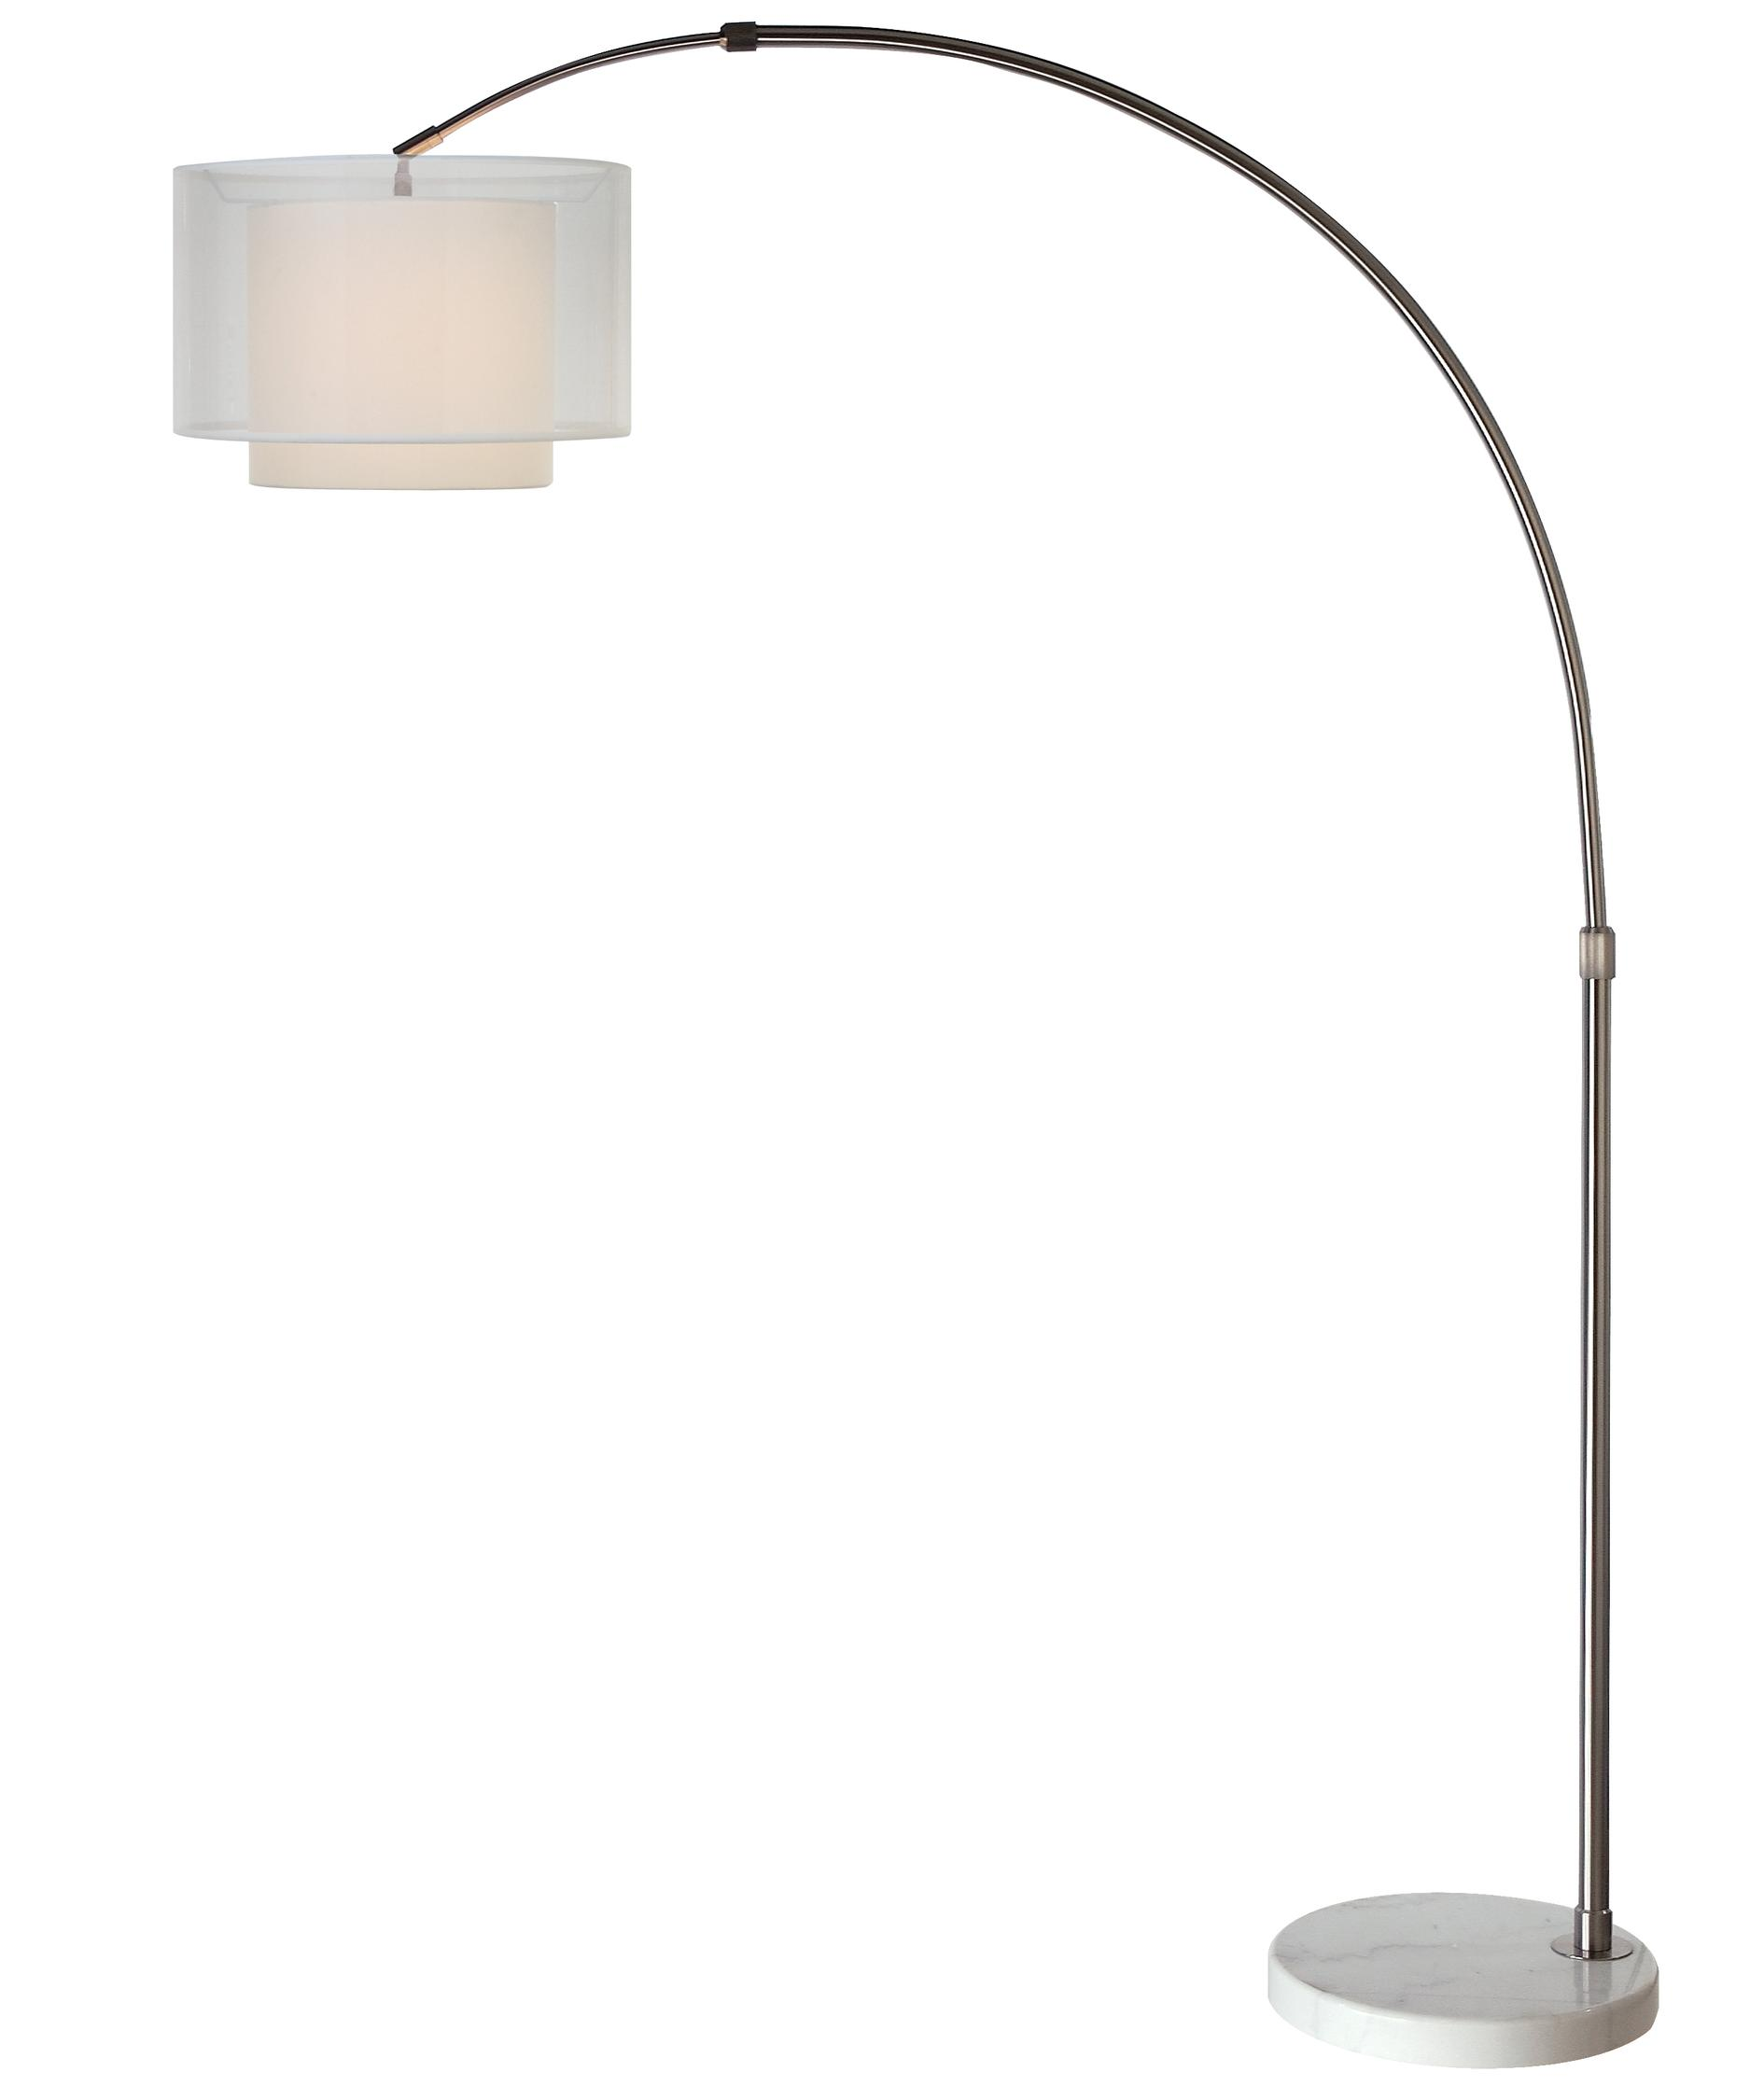 Trend Lighting BFA8400 Brella 69 Inch High Arc Lamp